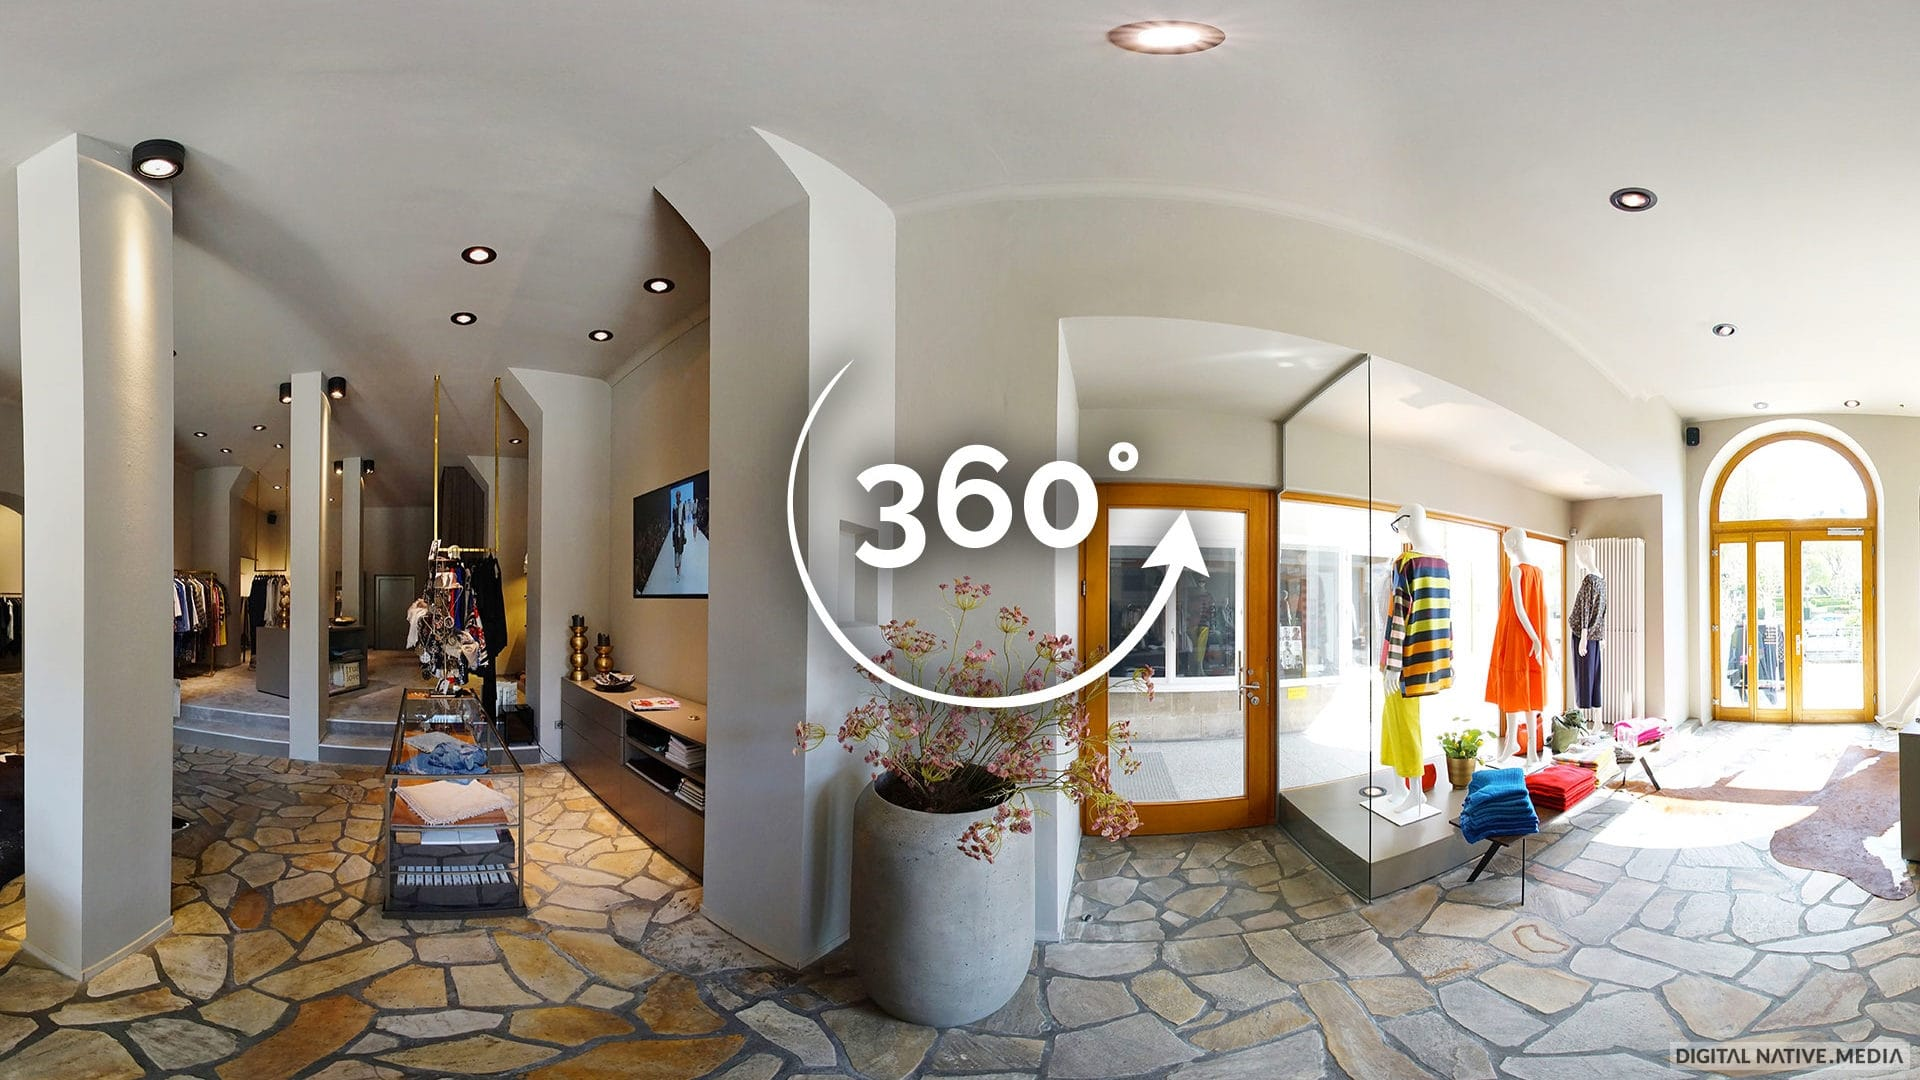 360°-Video von Fabio - Exklusive Damenmode in Bayreuth. Gedreht von Digital Native Media